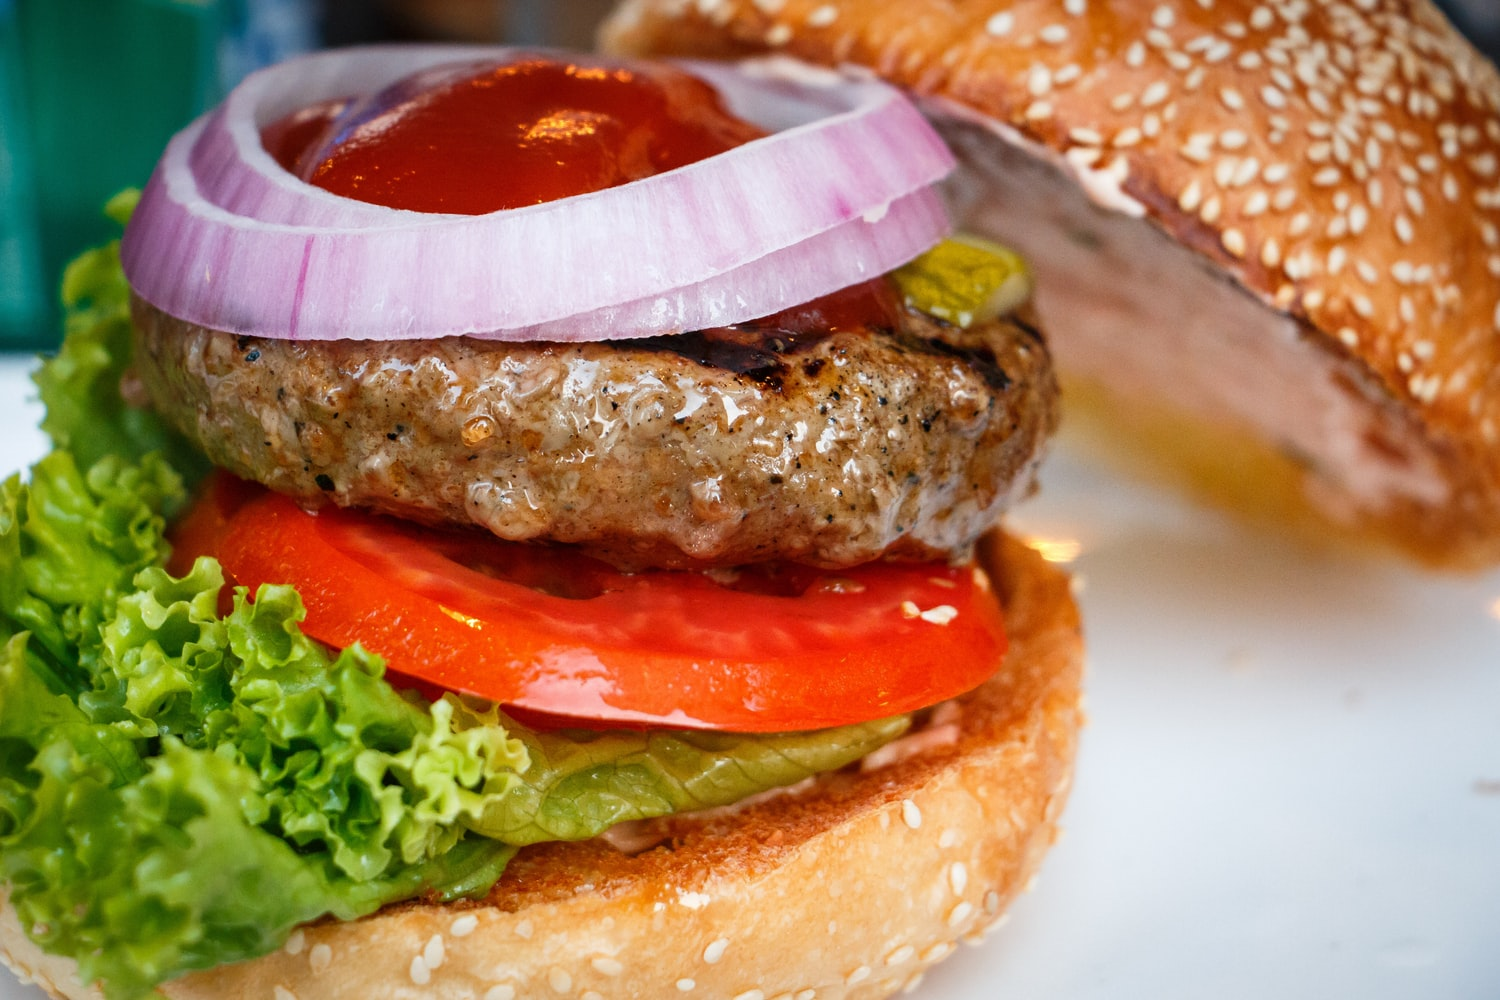 Burger with toppings